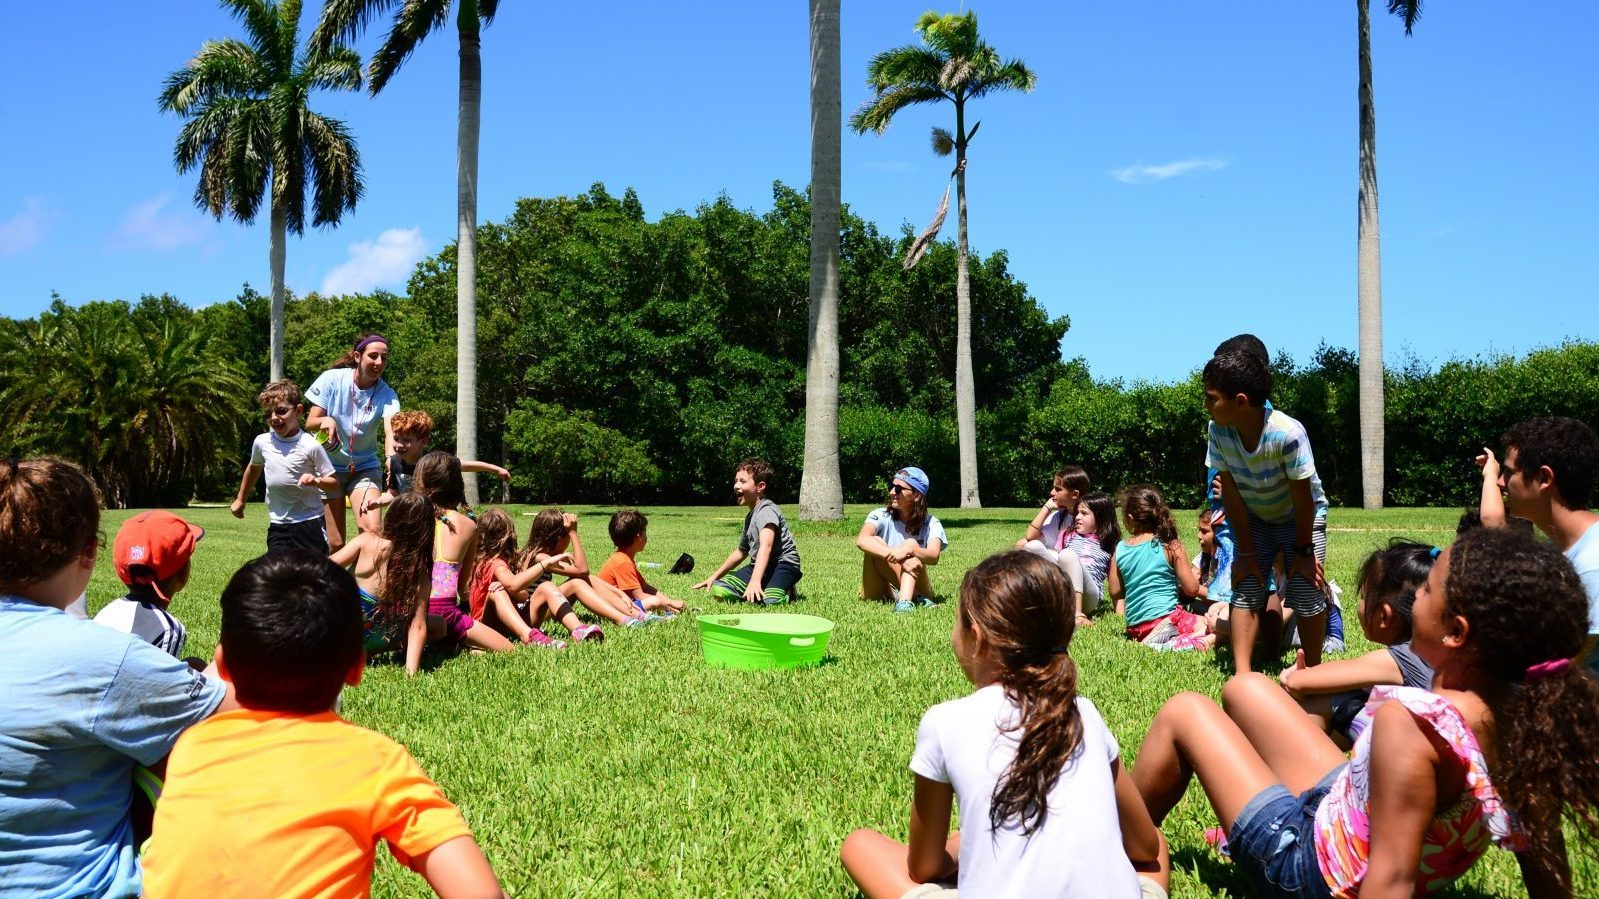 Small group of campers gathered around under the royal palms for an activity